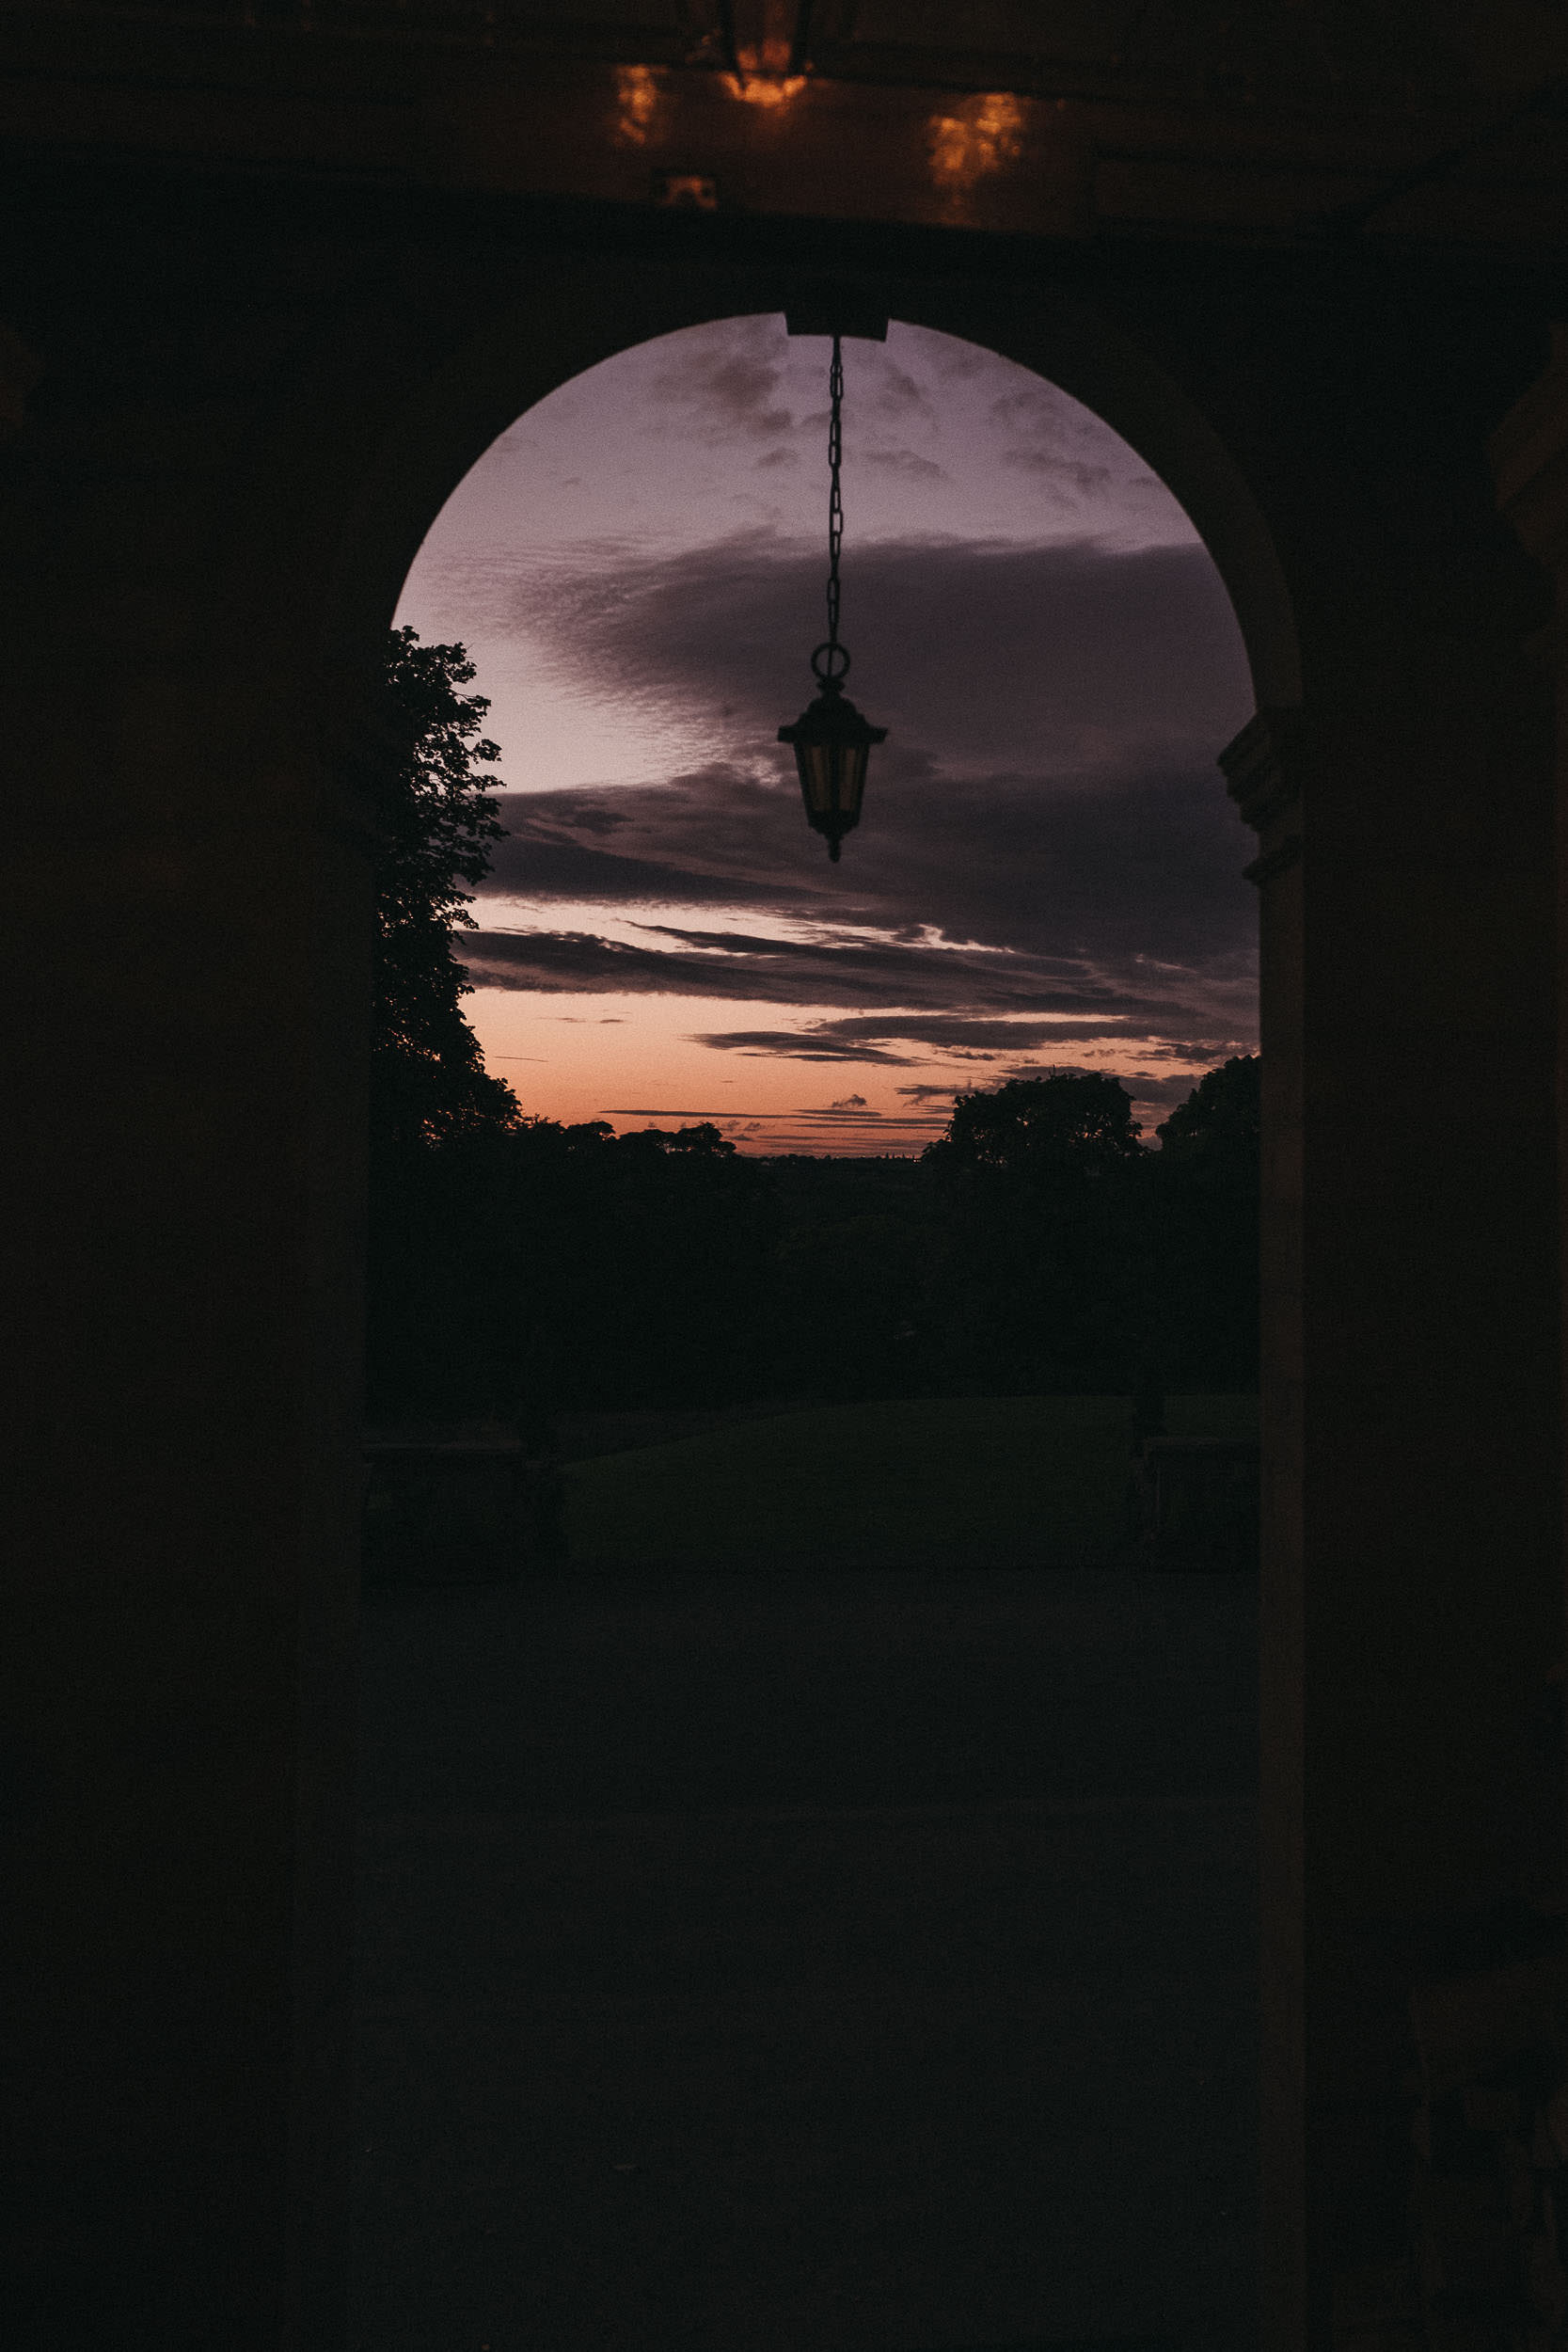 Sunset through the arched doorway at Bagden Hall